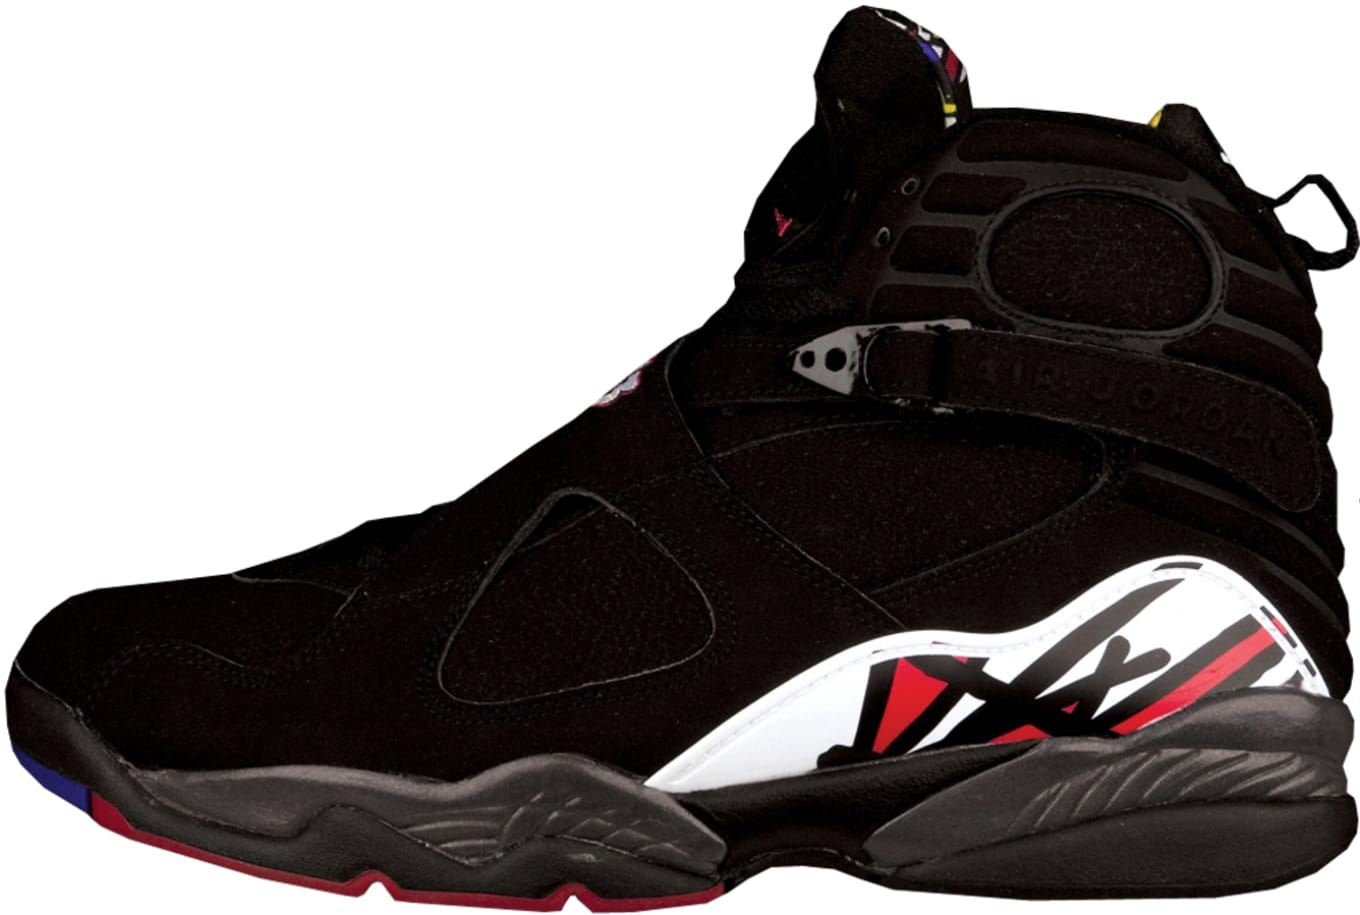 cbd7101cb73c0c The Air Jordan 8 Price Guide